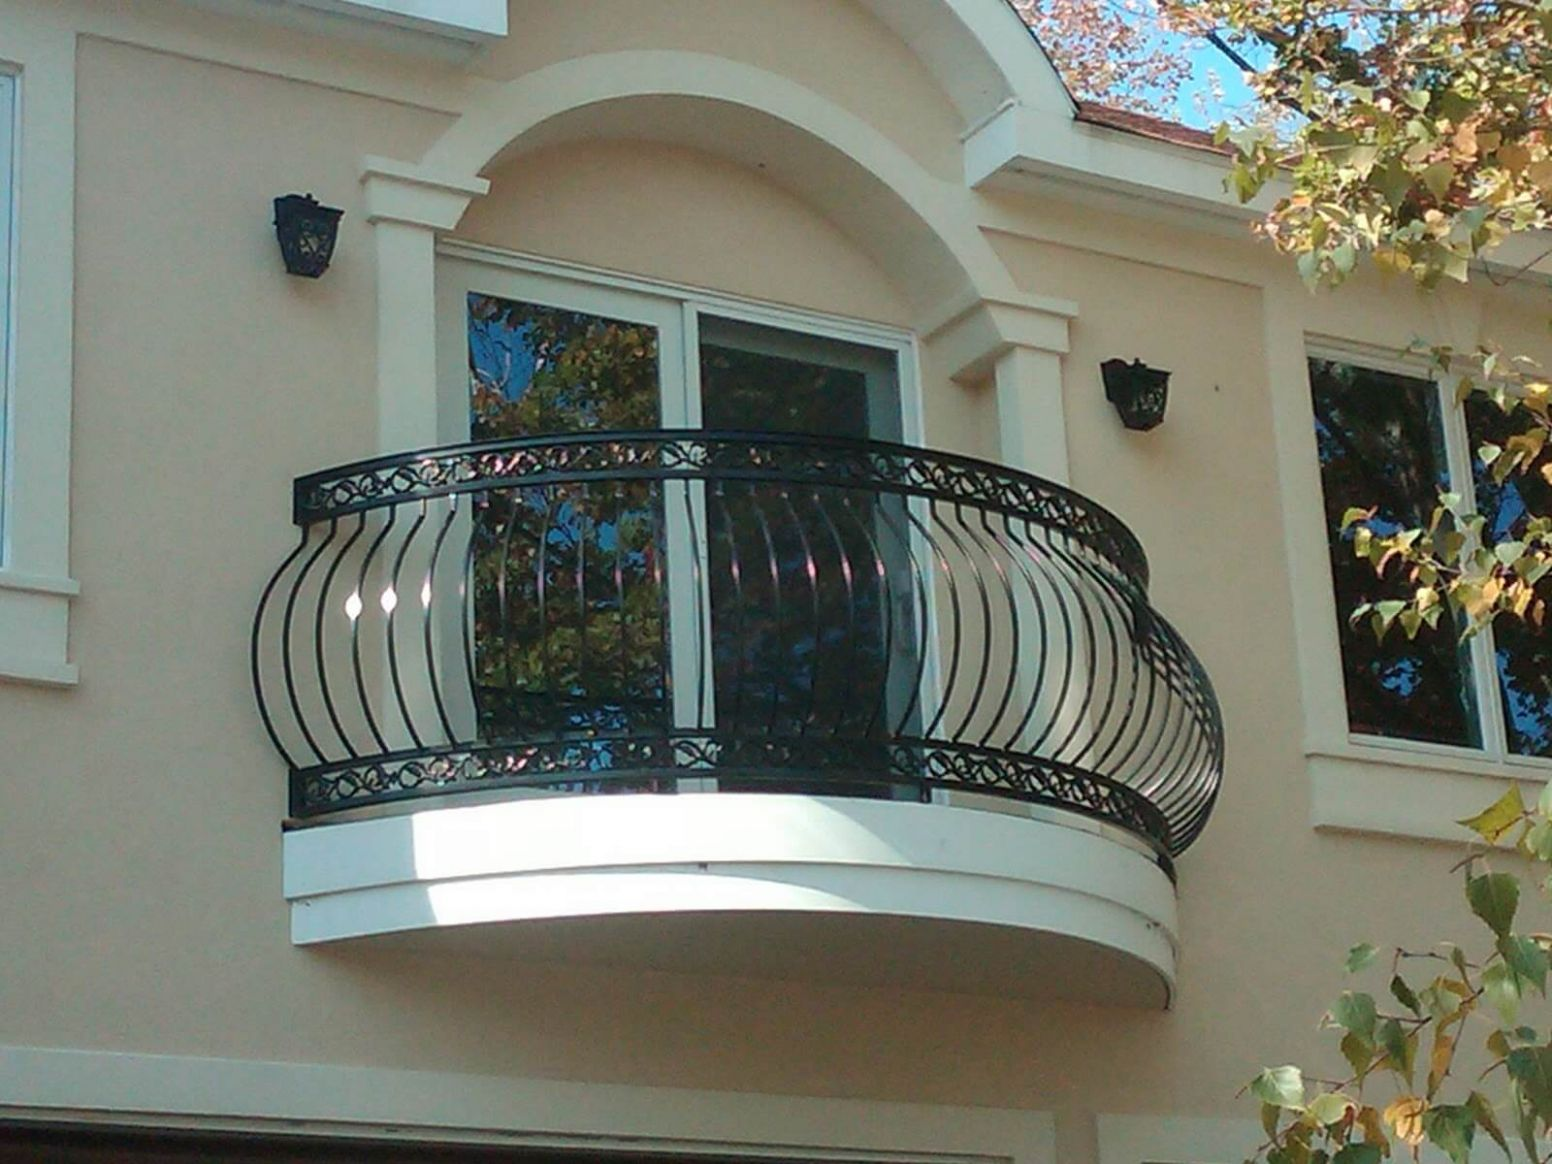 12+ Modern Balcony Railing Design Ideas With Photos - The ...